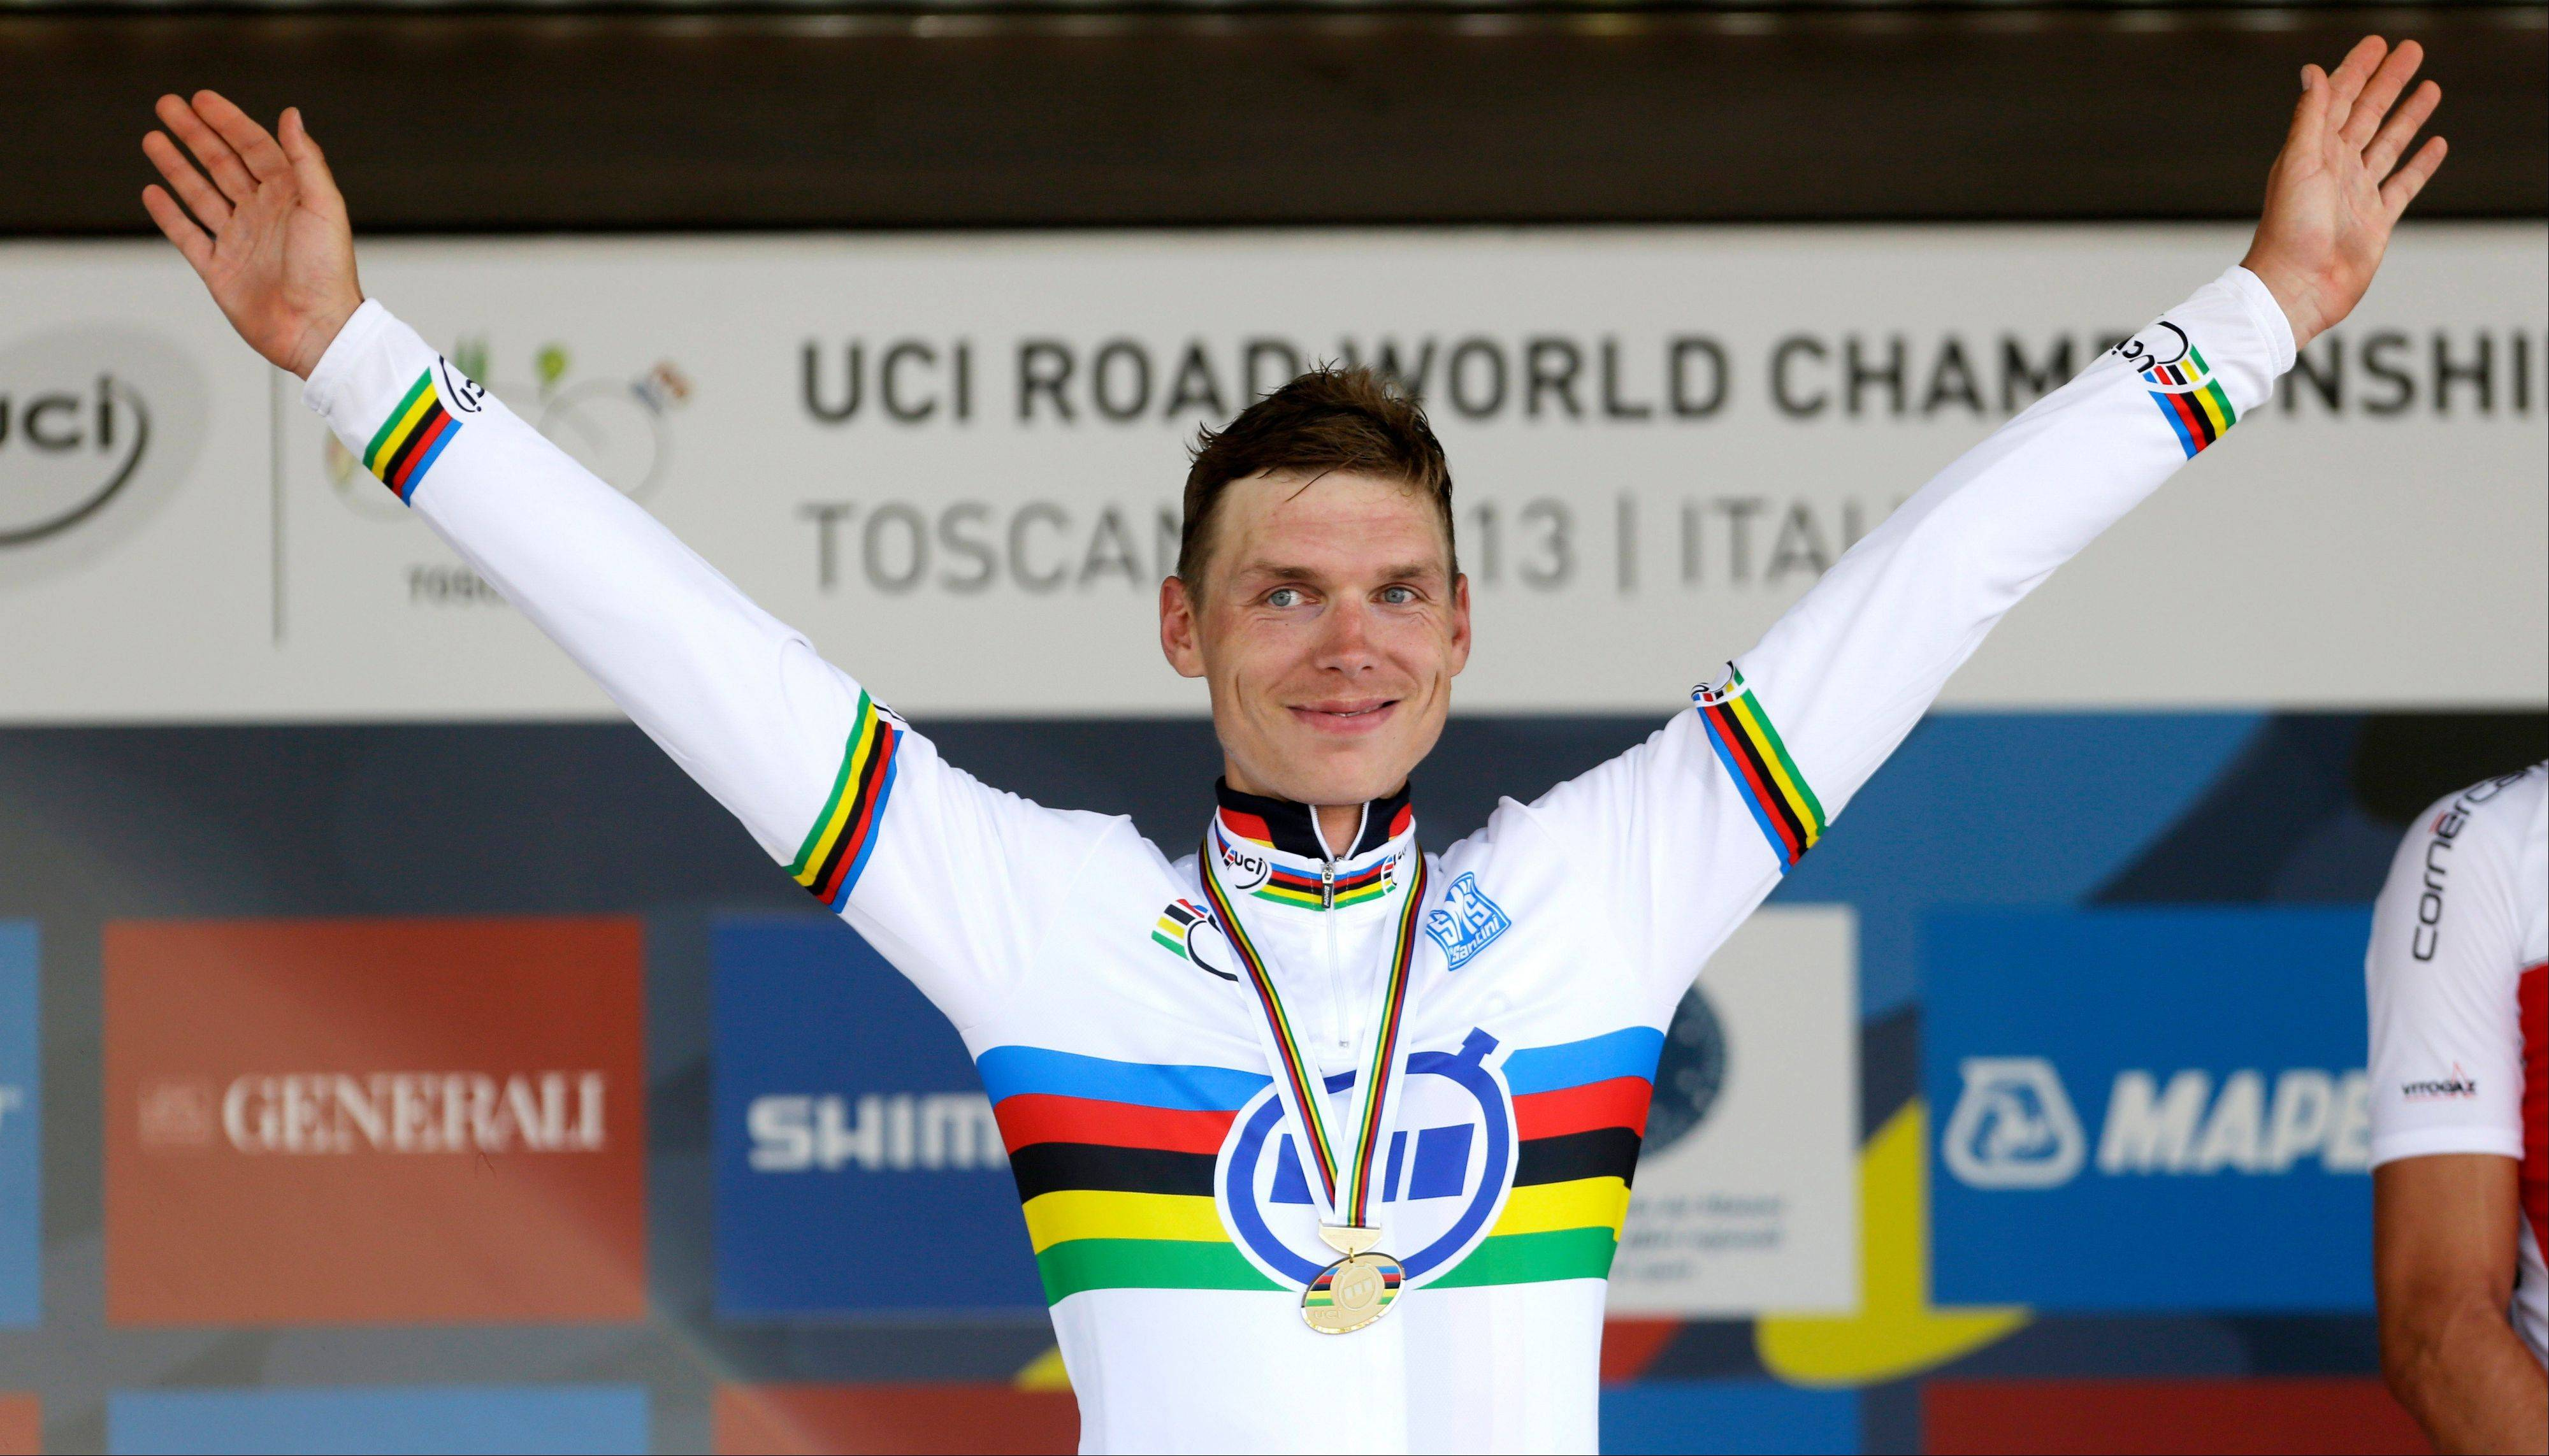 Tony Martin celebrates on the podium with the gold medal he won in the men�s individual time trial at the road cycling world championships Wednesday in Florence, Italy.